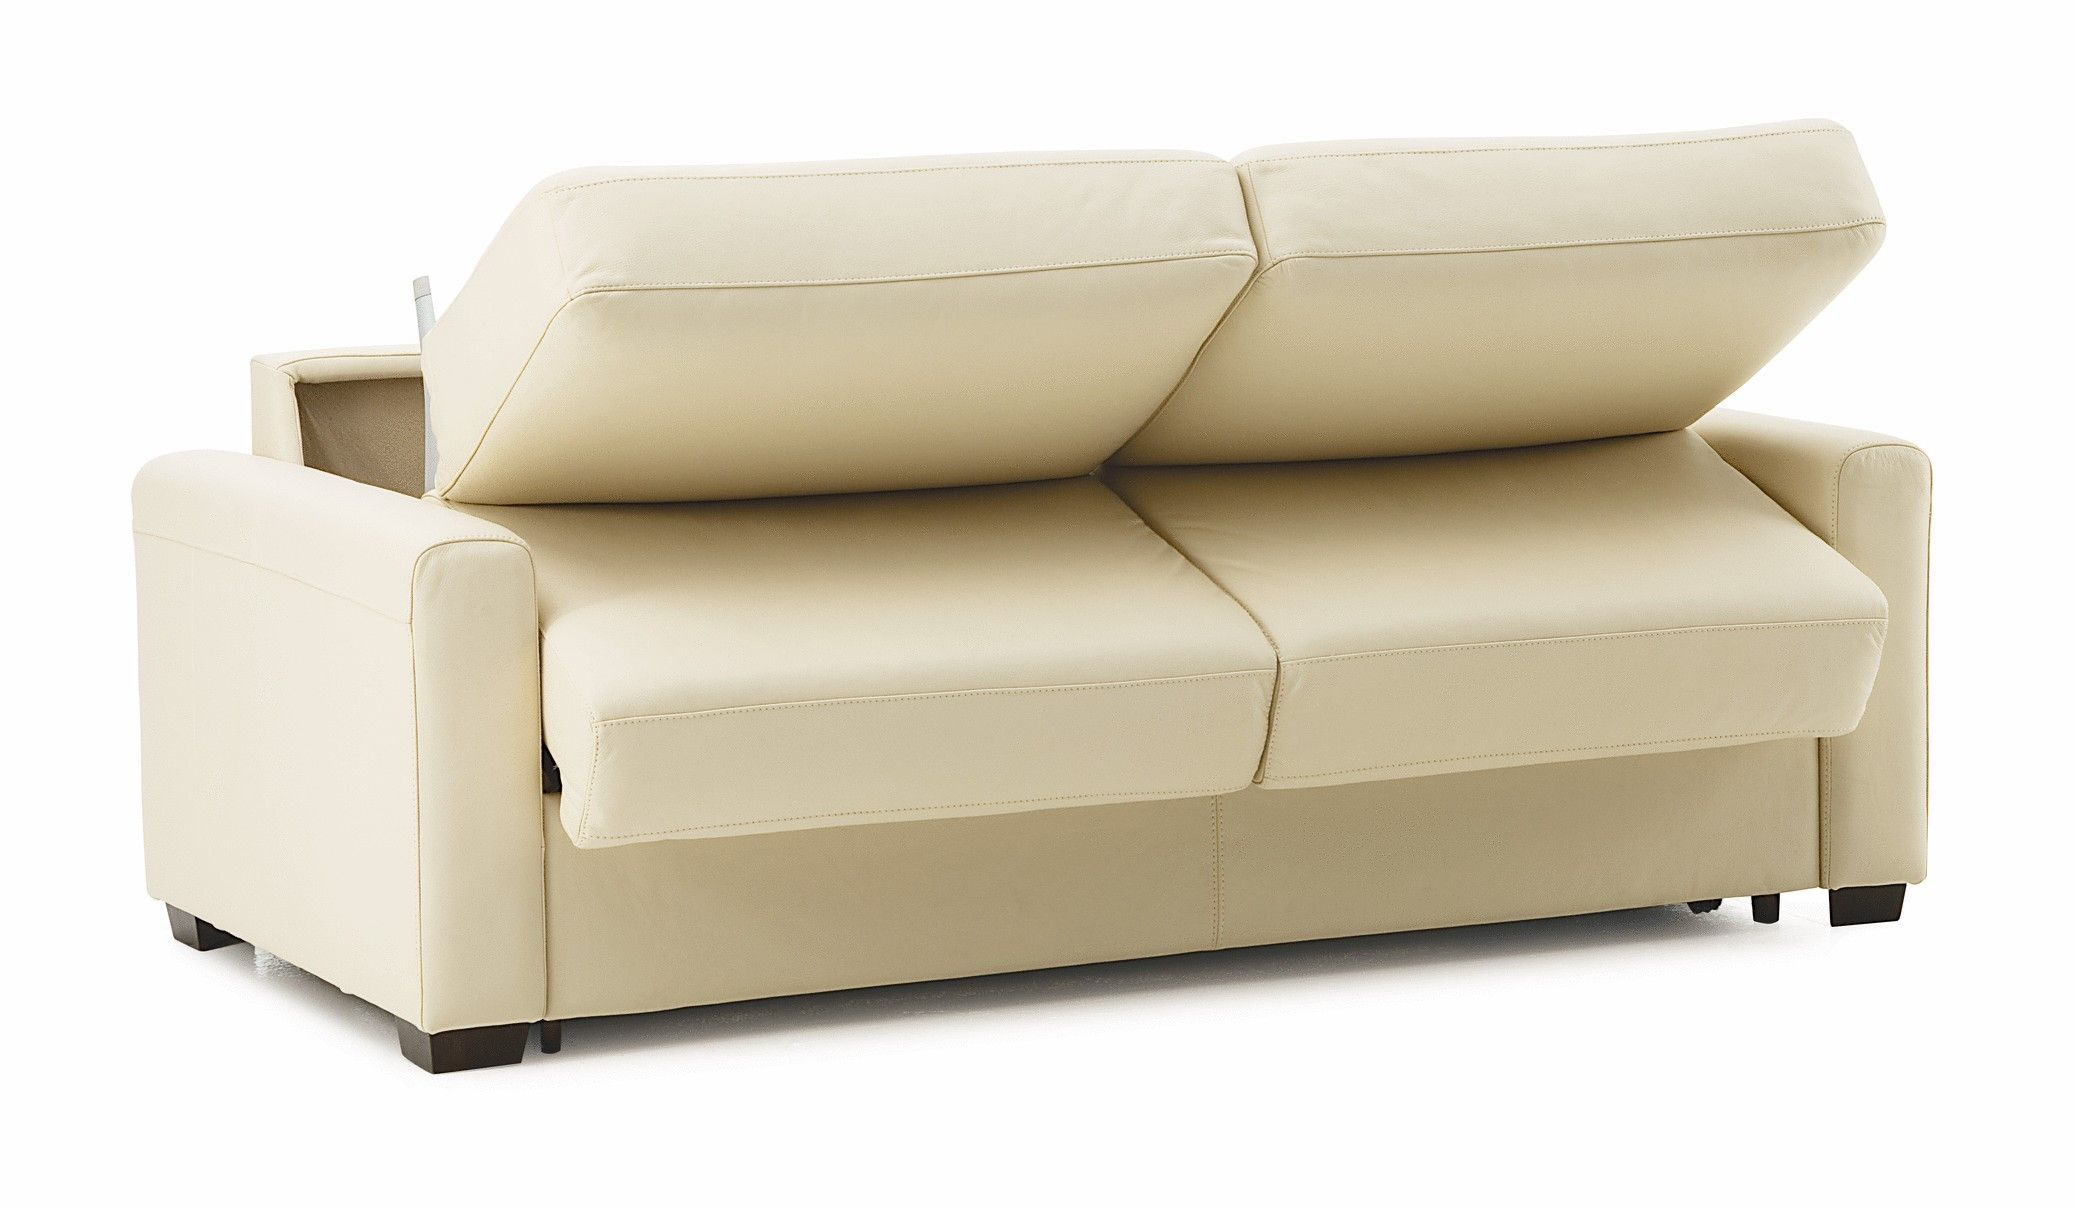 Best Sleeper Sofa For Daily Use